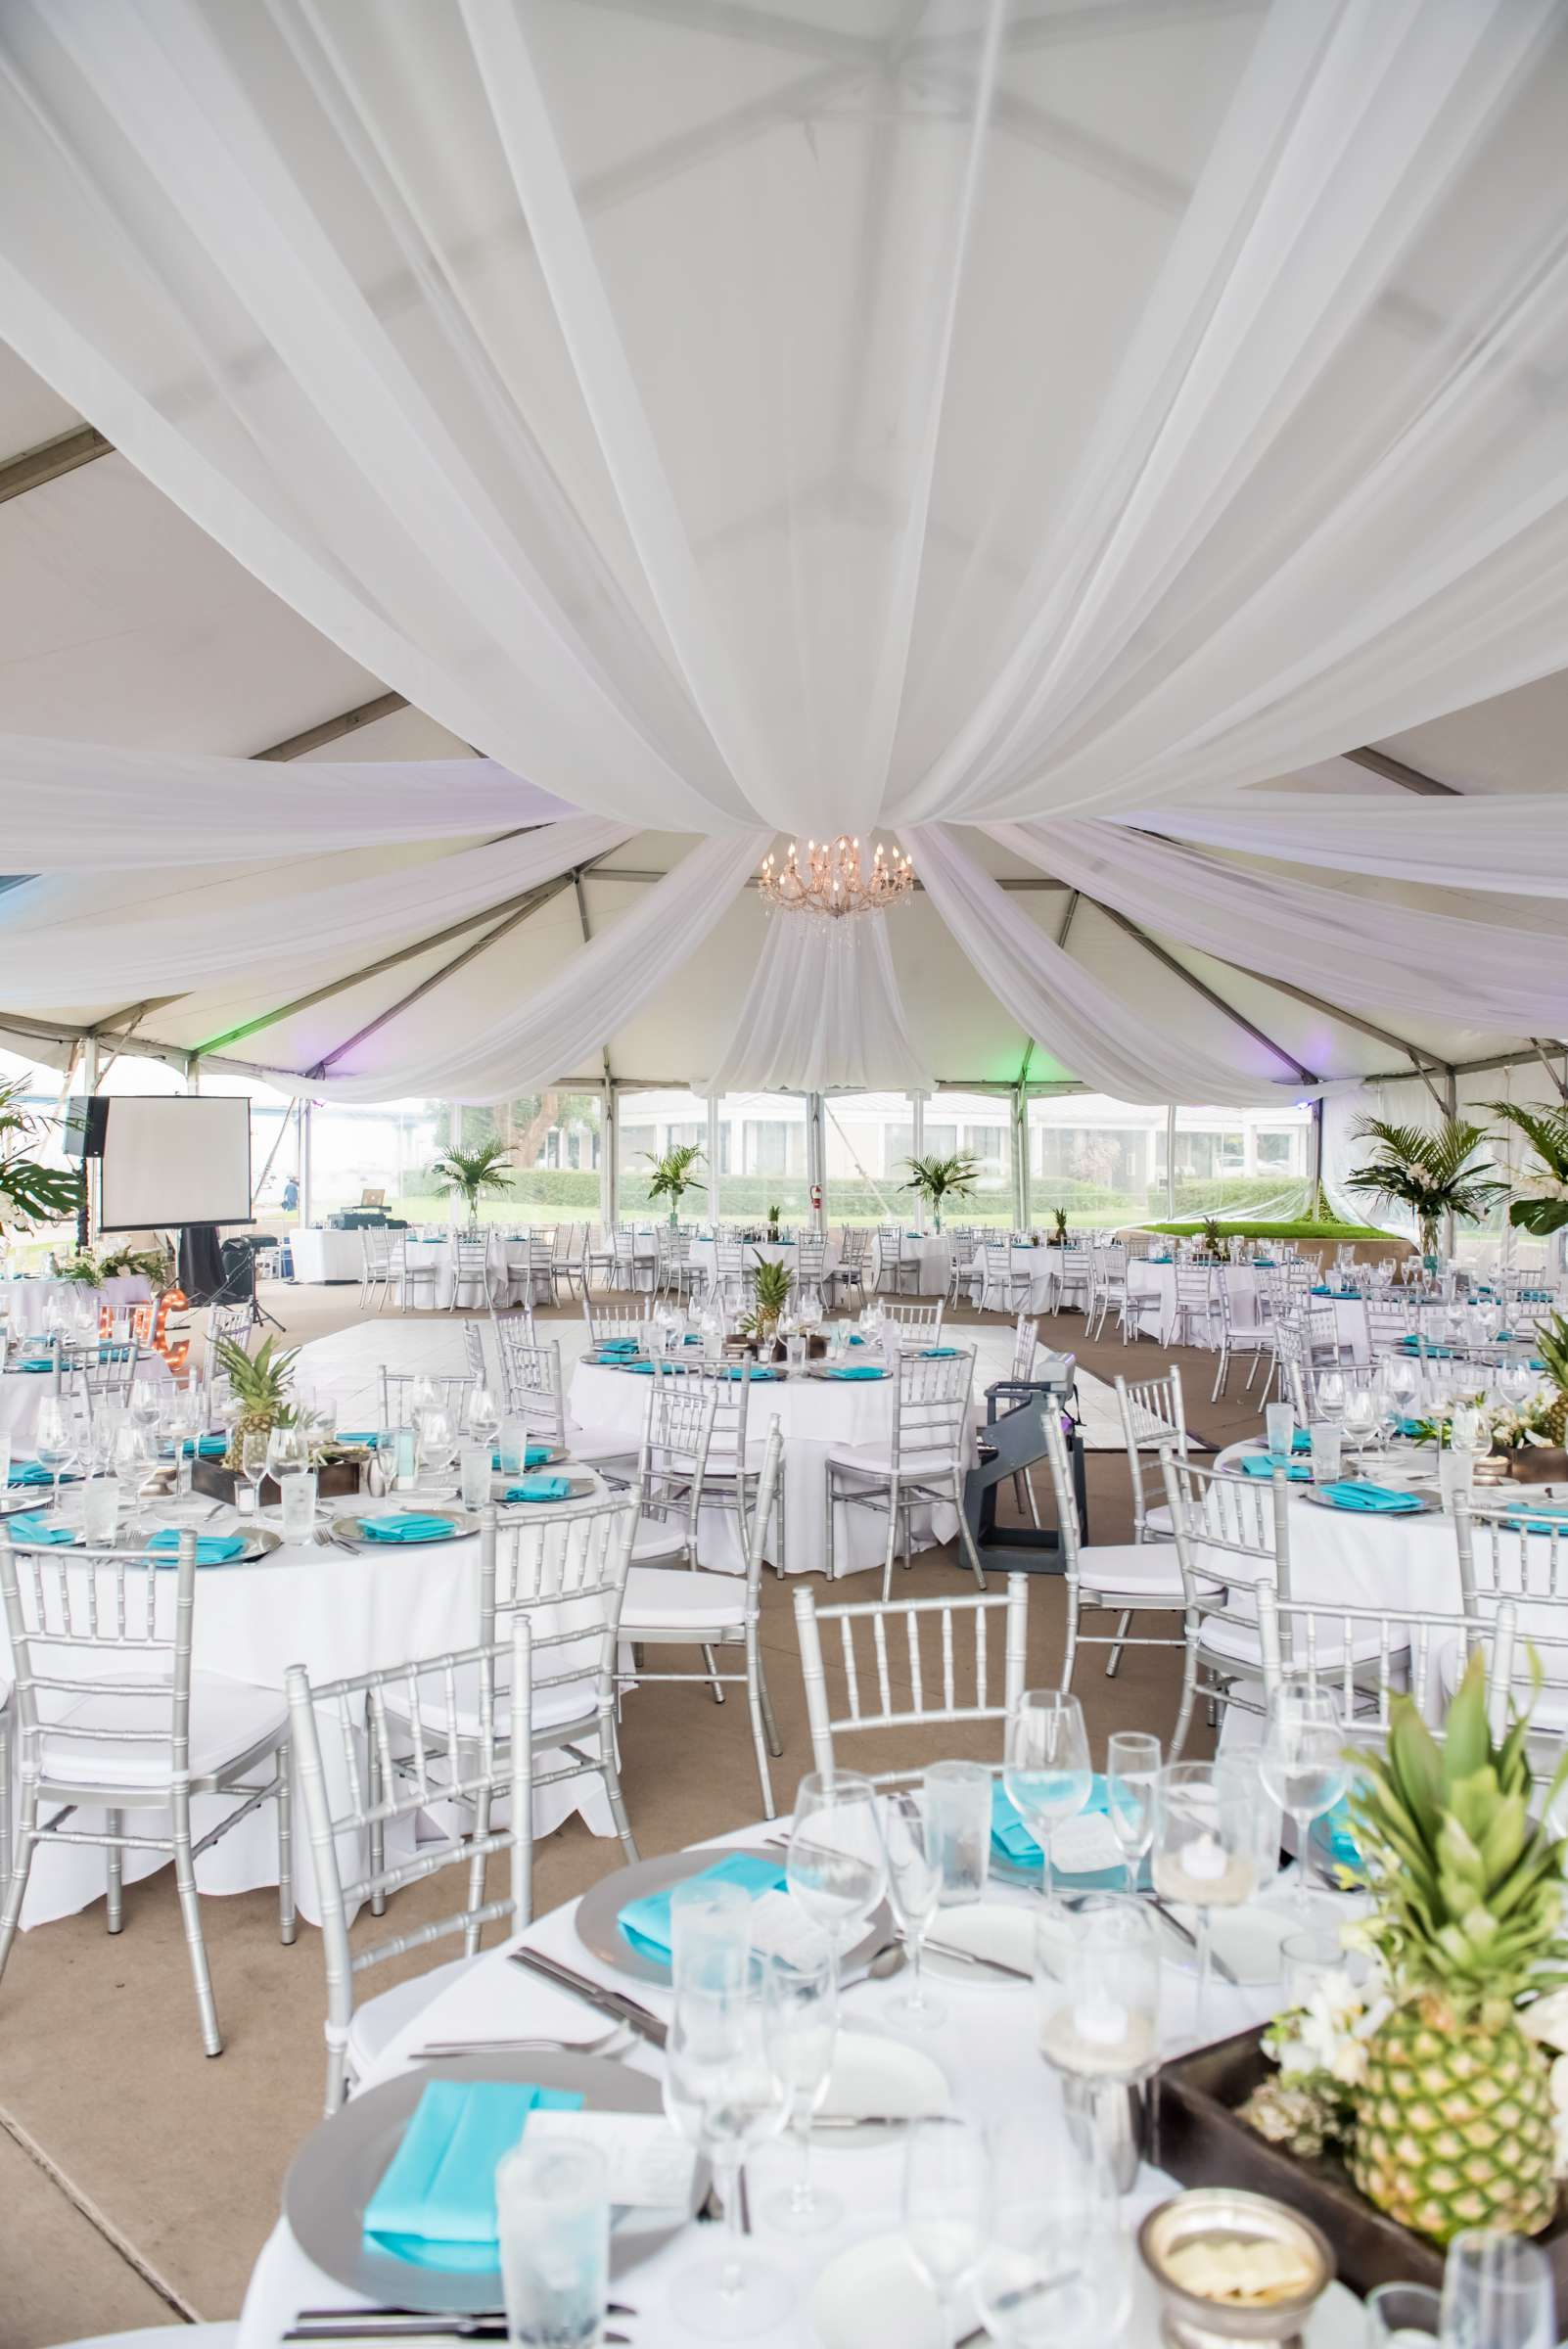 Coronado Island Marriott Resort & Spa Wedding coordinated by Bluestocking Weddings & Events, Ashleigh and Christopher Wedding Photo #186 by True Photography